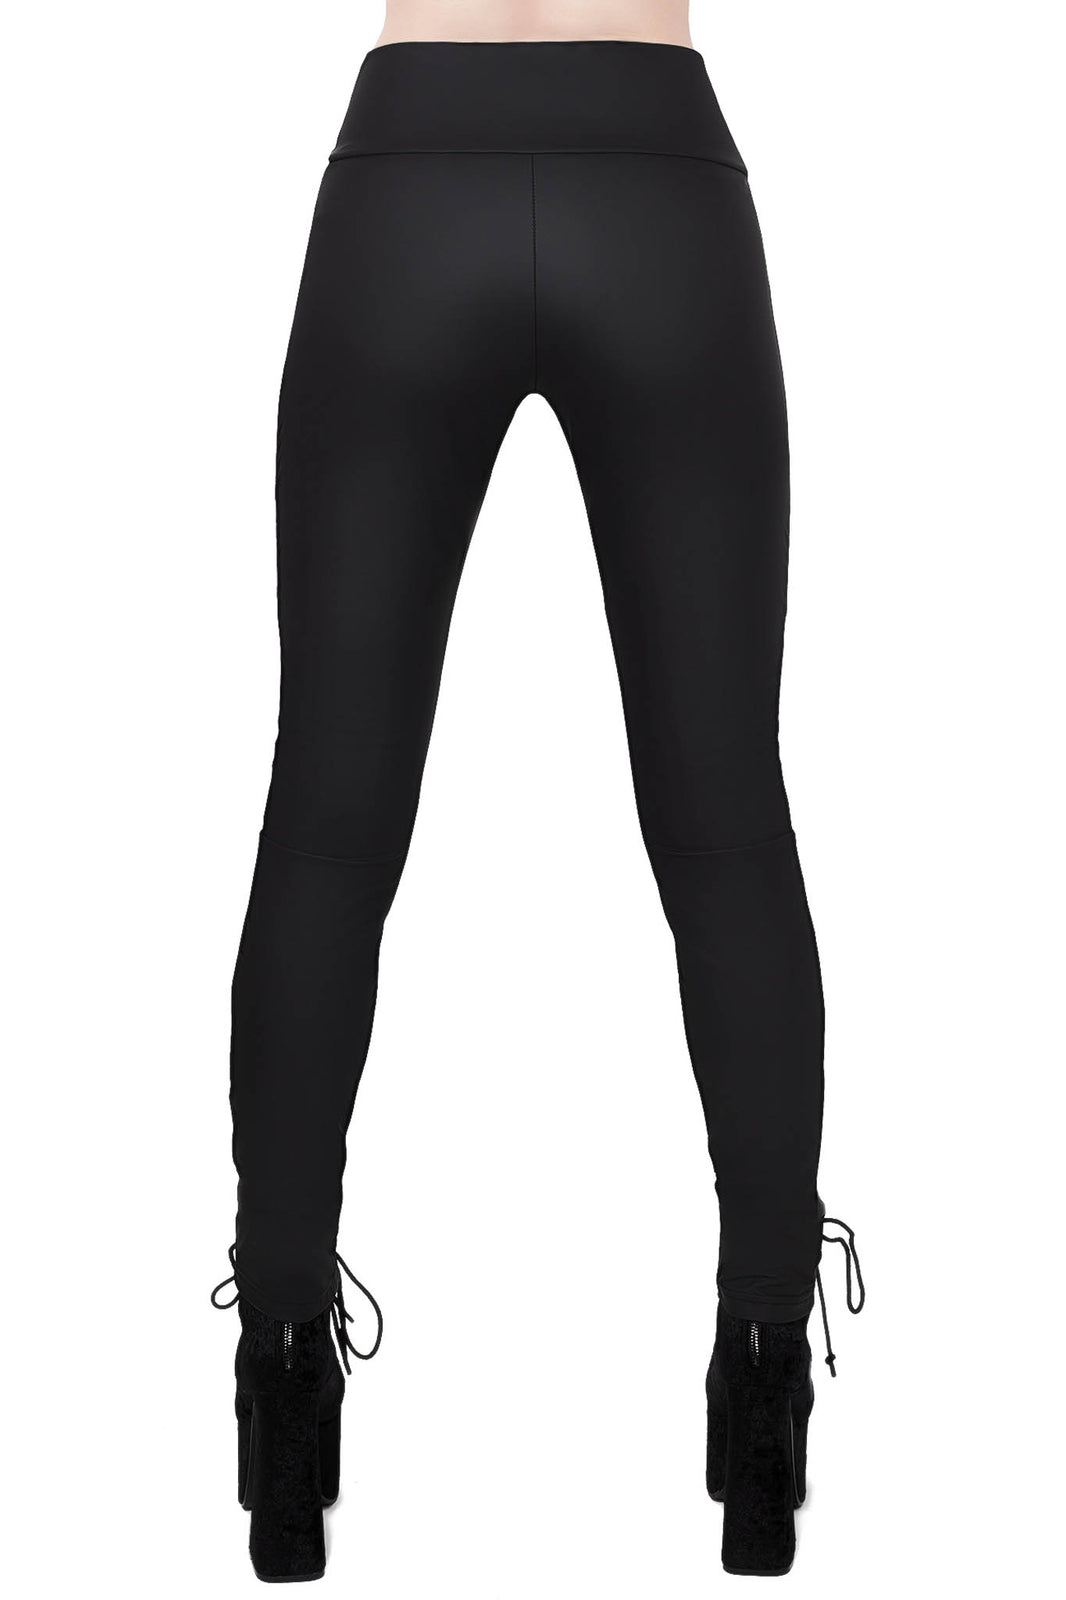 Viper Lace-Up leggings [B]